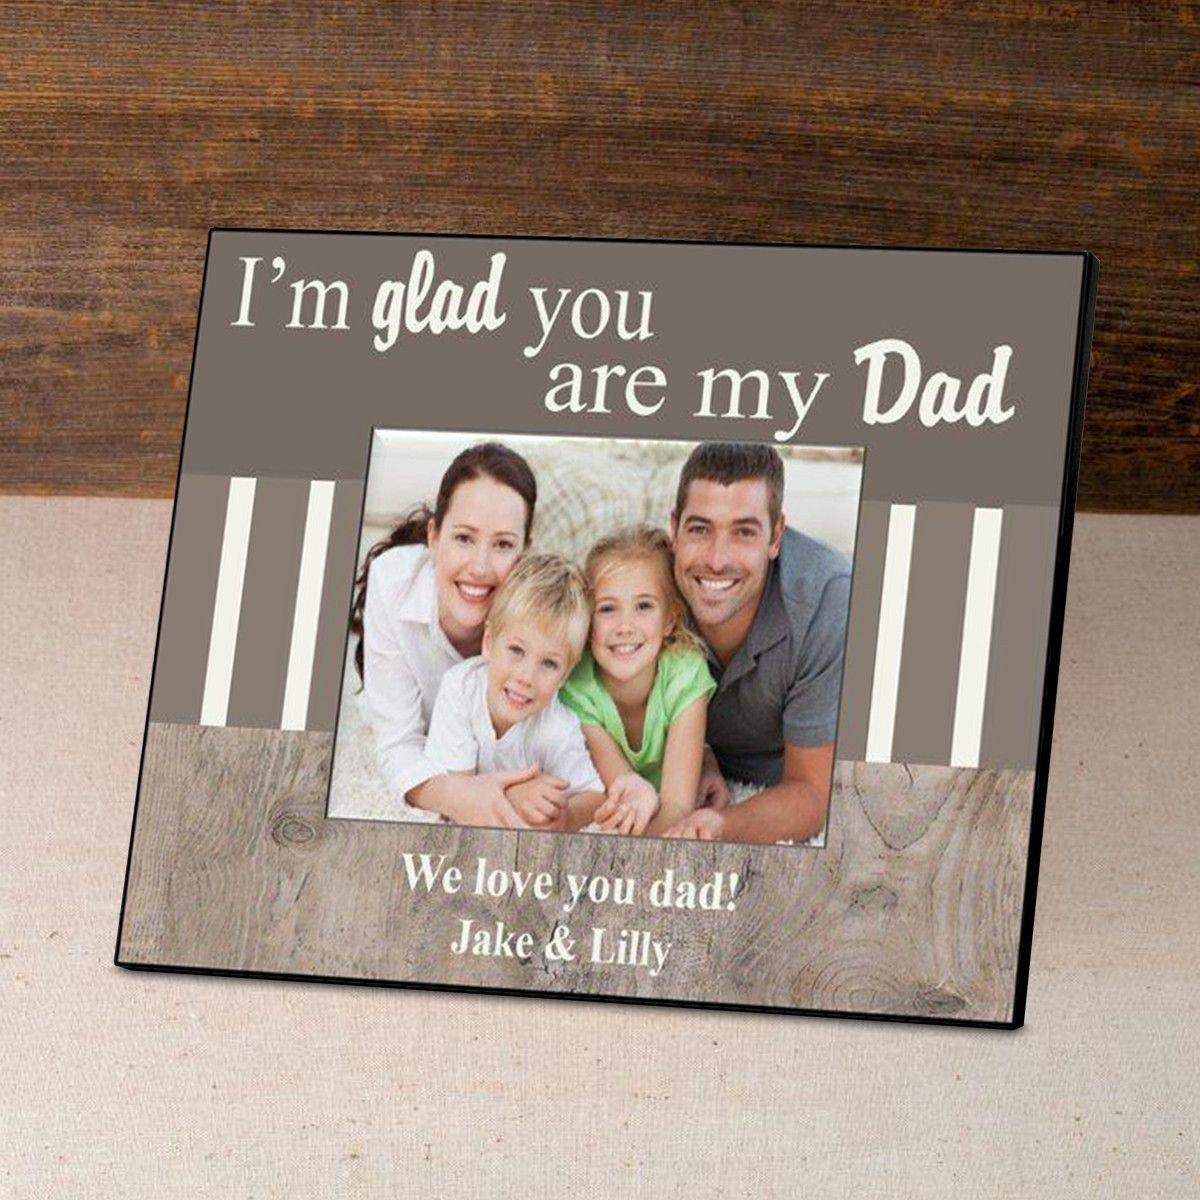 Personalized Father's Day Picture Frame - I'm Glad